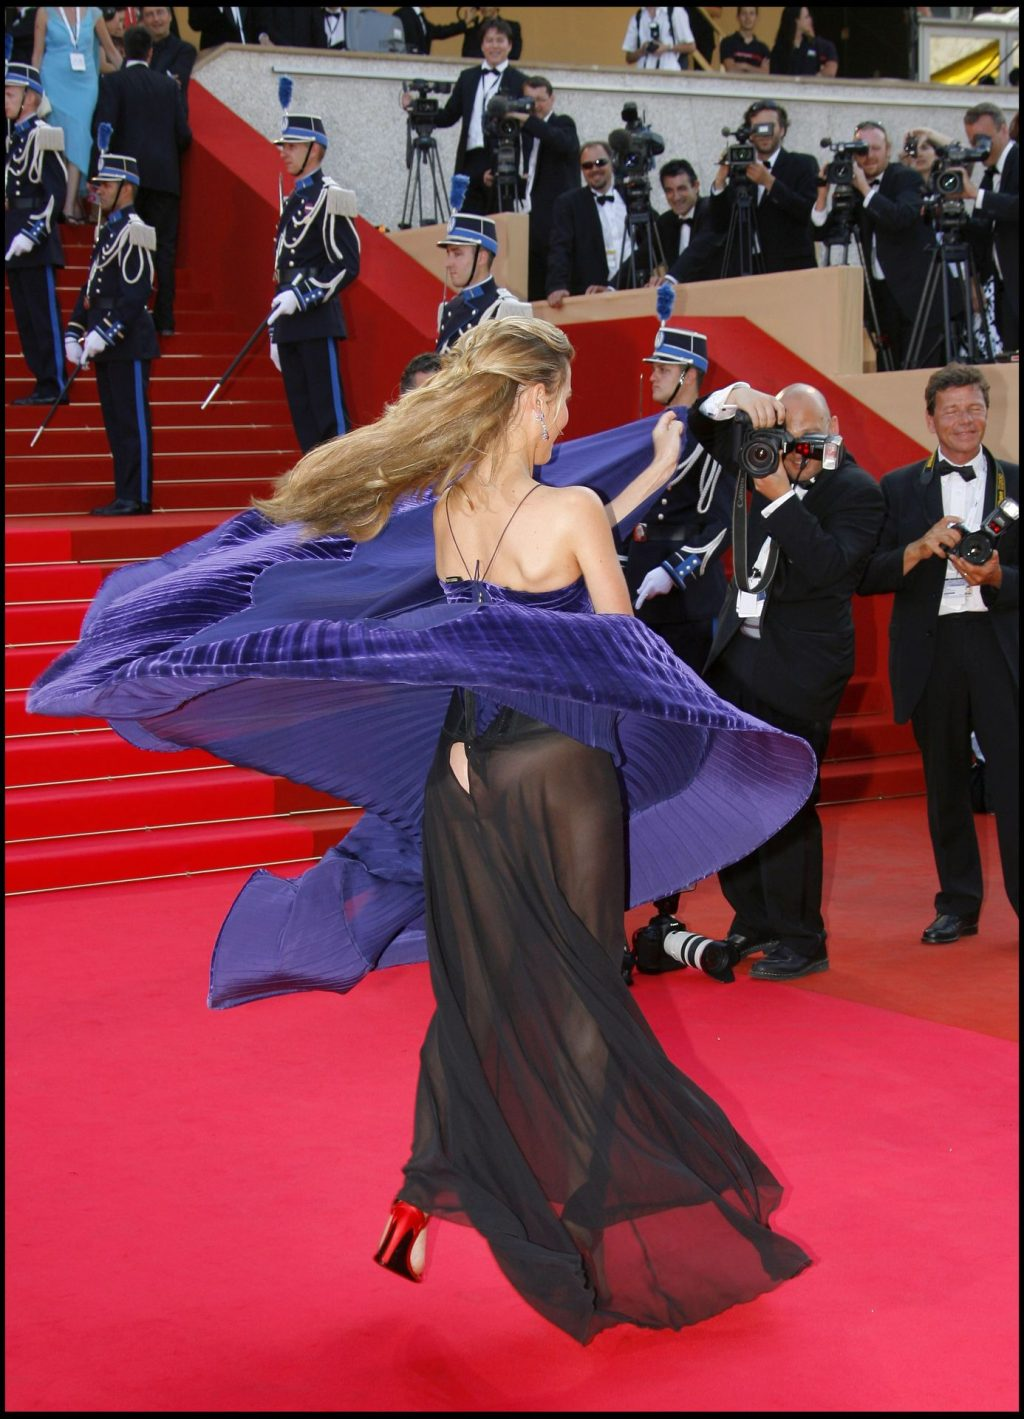 Vahina Giocante Shows Her Panties in Cannes (1 Photo)